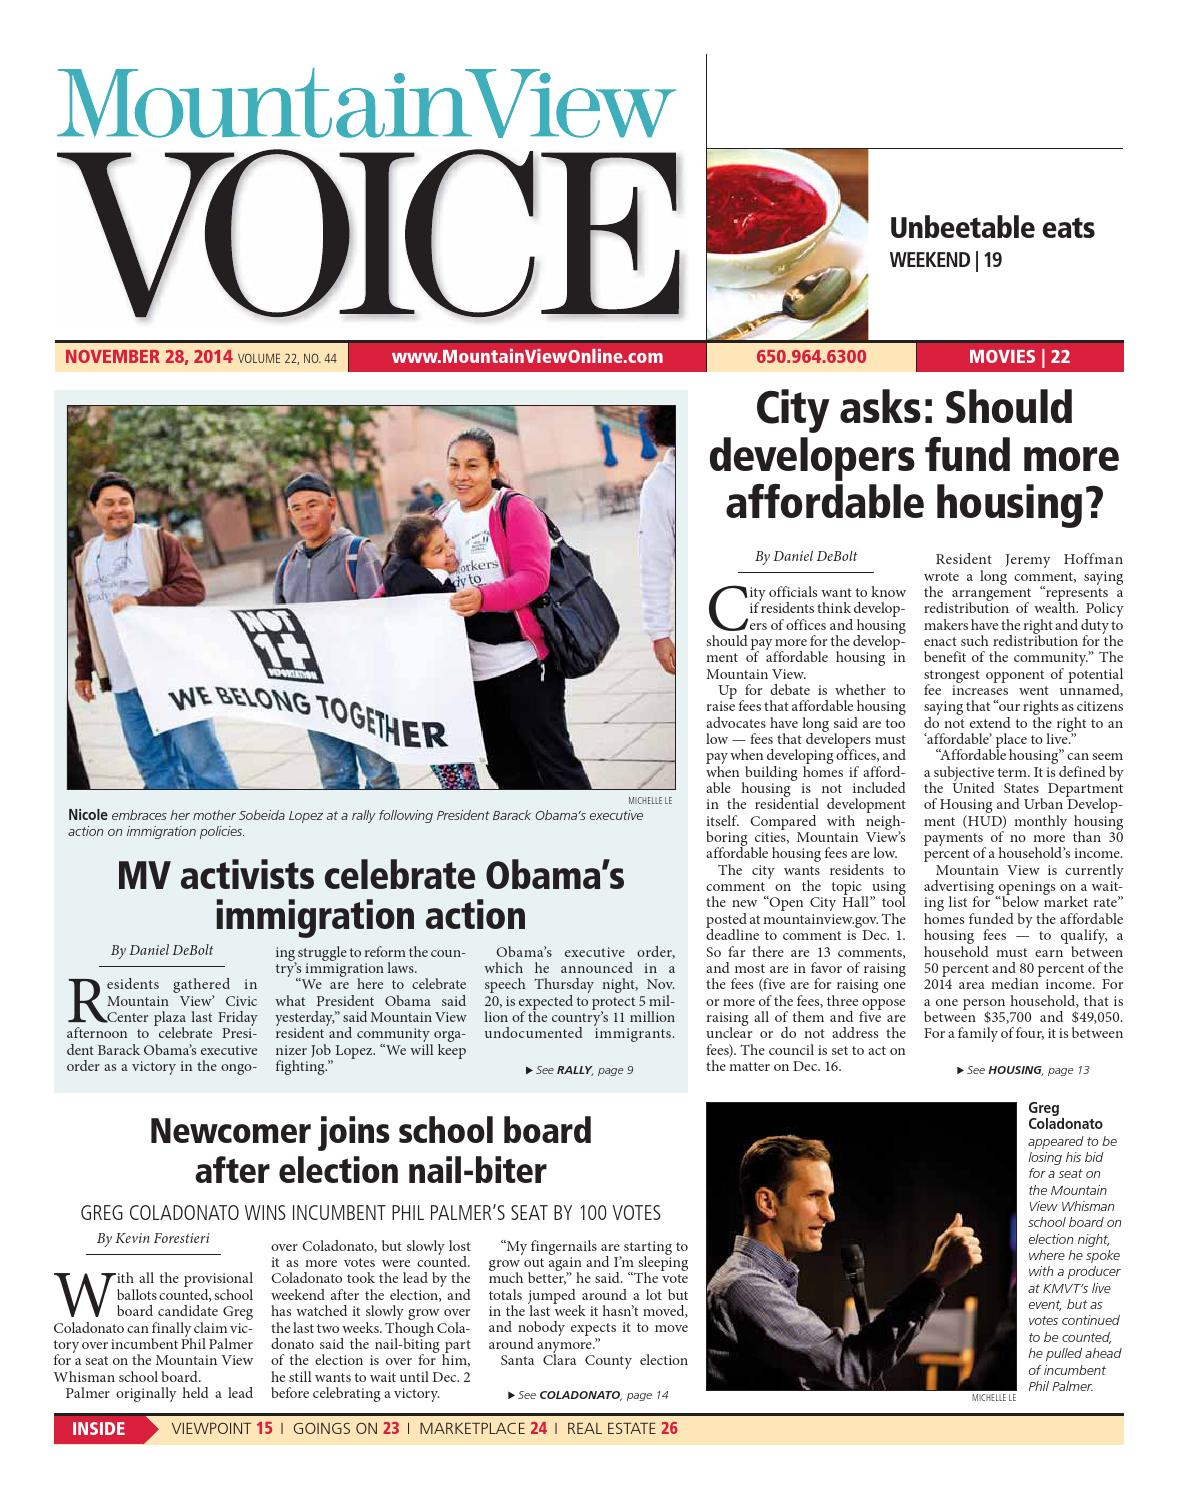 Mountain View Voice November 28, 2014 by Mountain View Voice - issuu